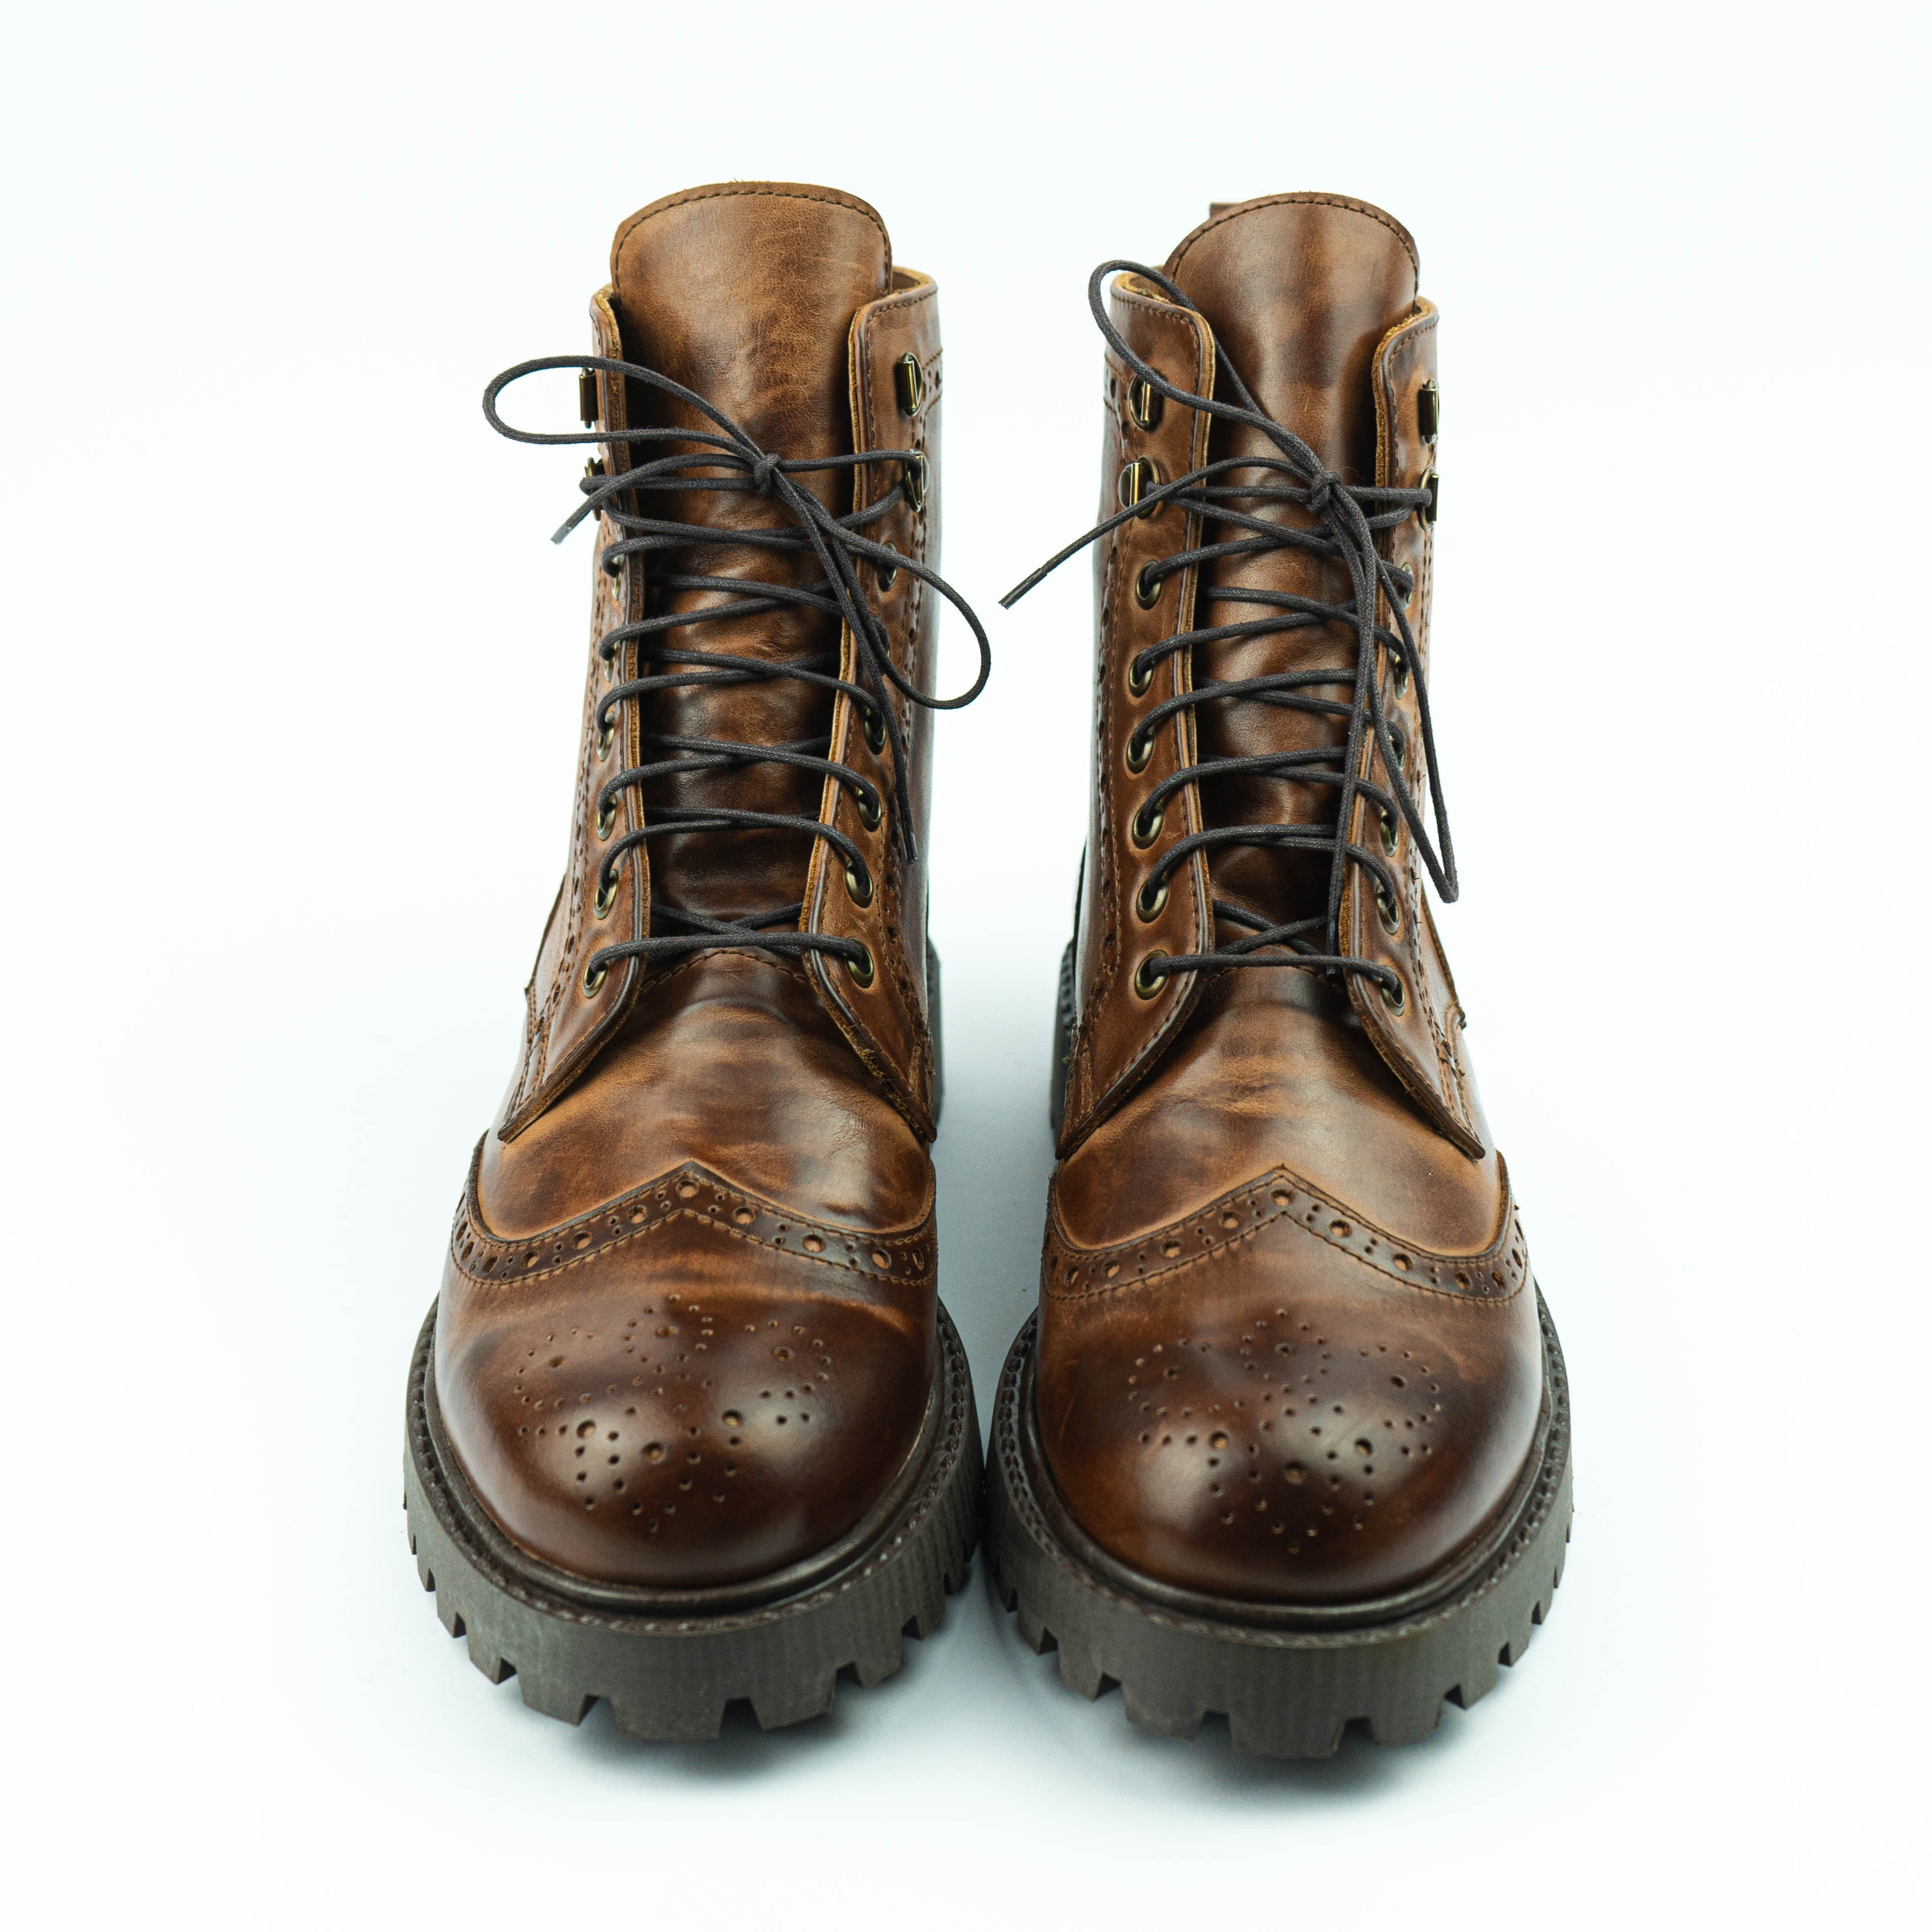 The Brogue Boots